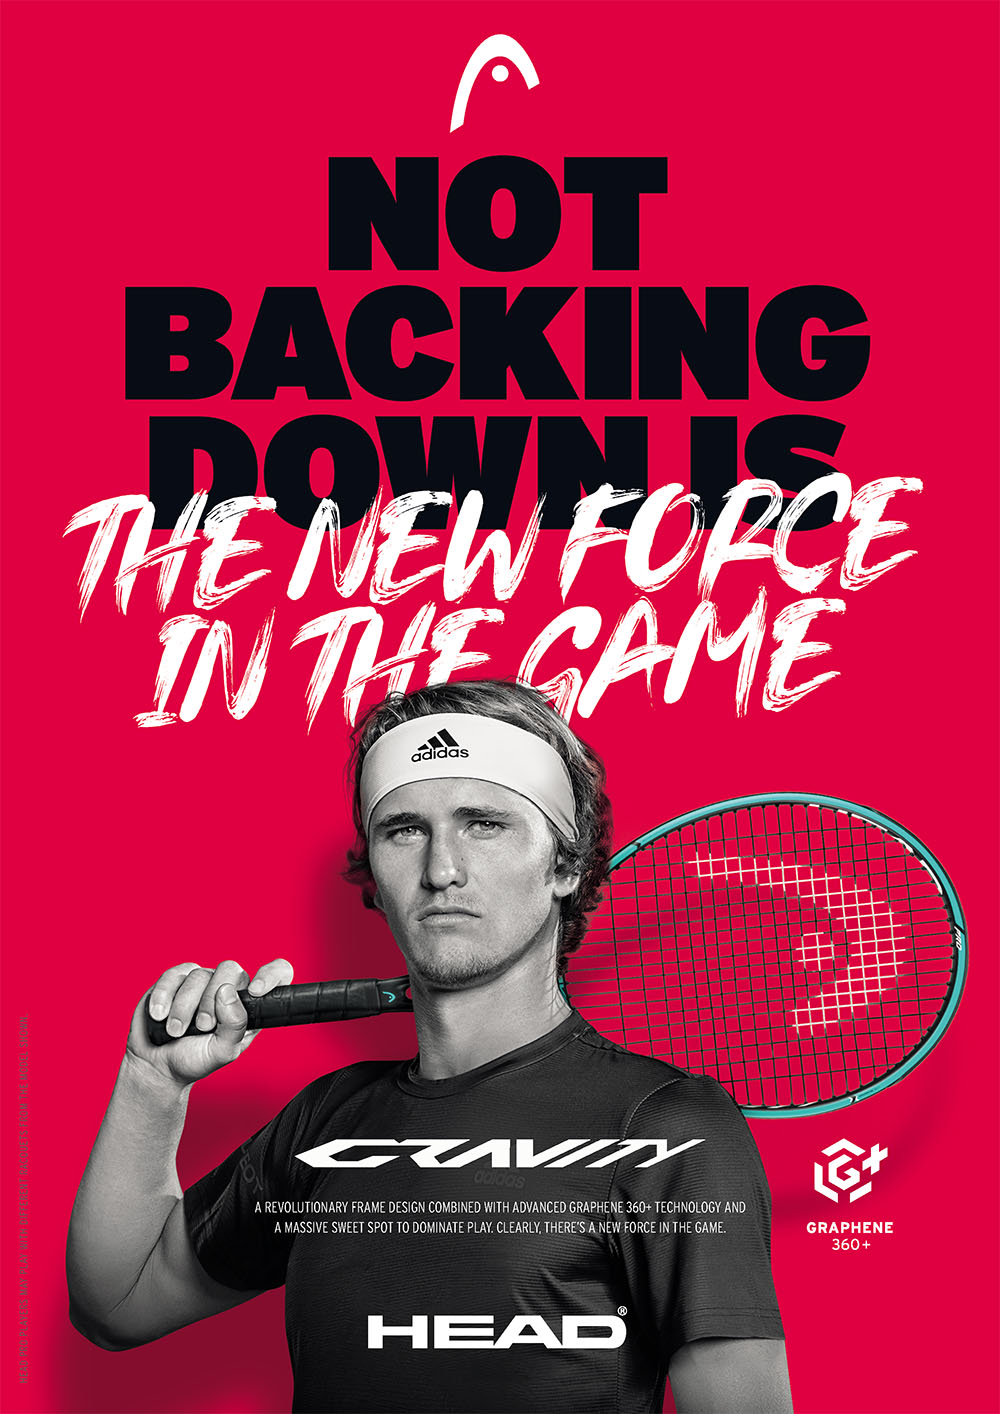 Head Gravity Tennis Racquets: Not backing down is the new force in the game! A revolutionary frame design combined with advanced Graphene 360+ technology and a massive sweet spot to dominate play. Clearly, there's a new force in the game!